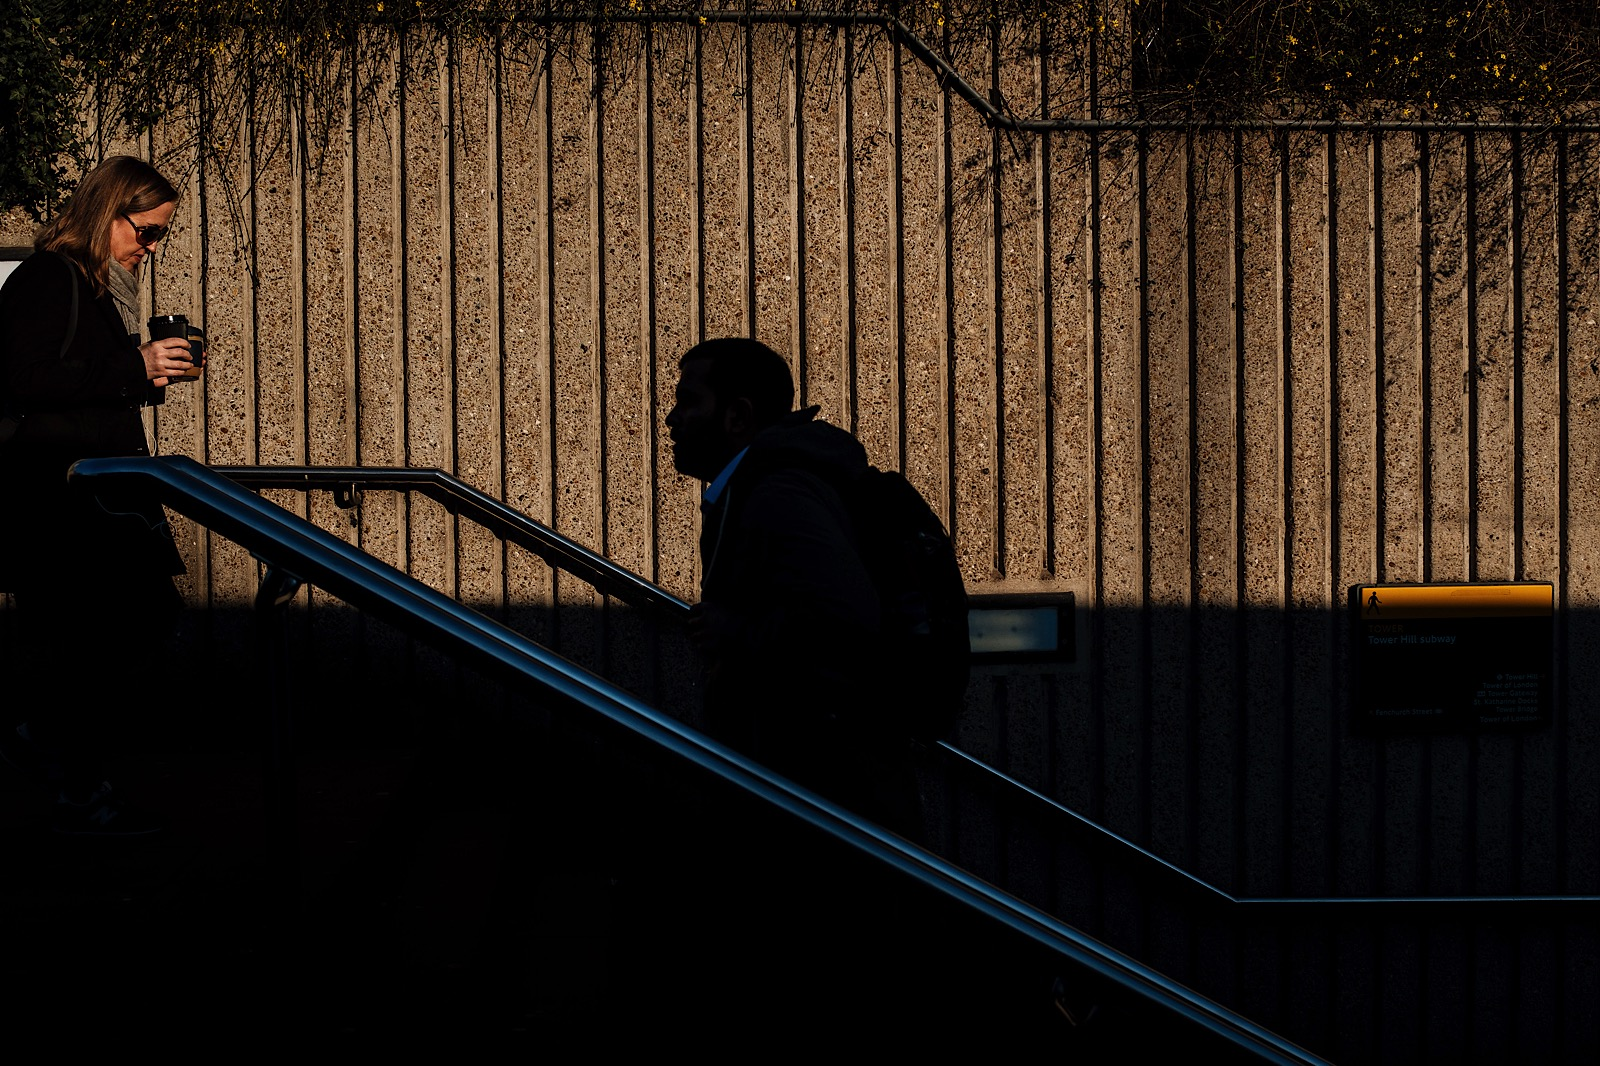 Street Photography of a man in shadow and a woman in light